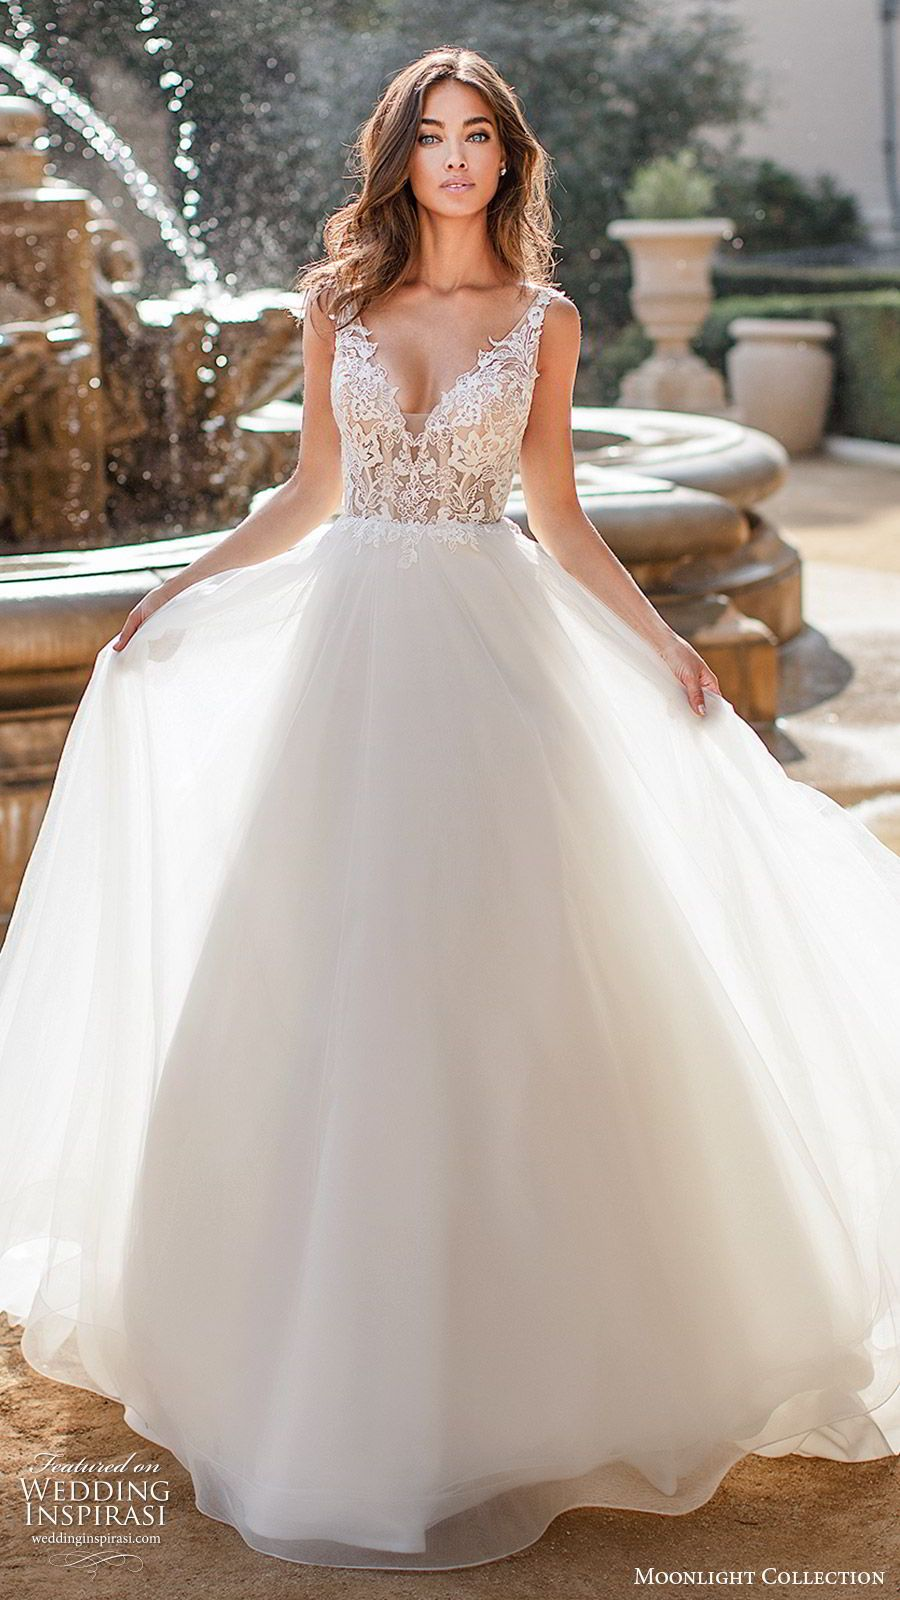 Beautiful Wedding Dresses From The 2017 Crystal Design Collection Sevilla Bridal Campaign Wedding Inspirasi Pink Wedding Dresses Ball Gowns Wedding Backless Wedding [ 1326 x 900 Pixel ]